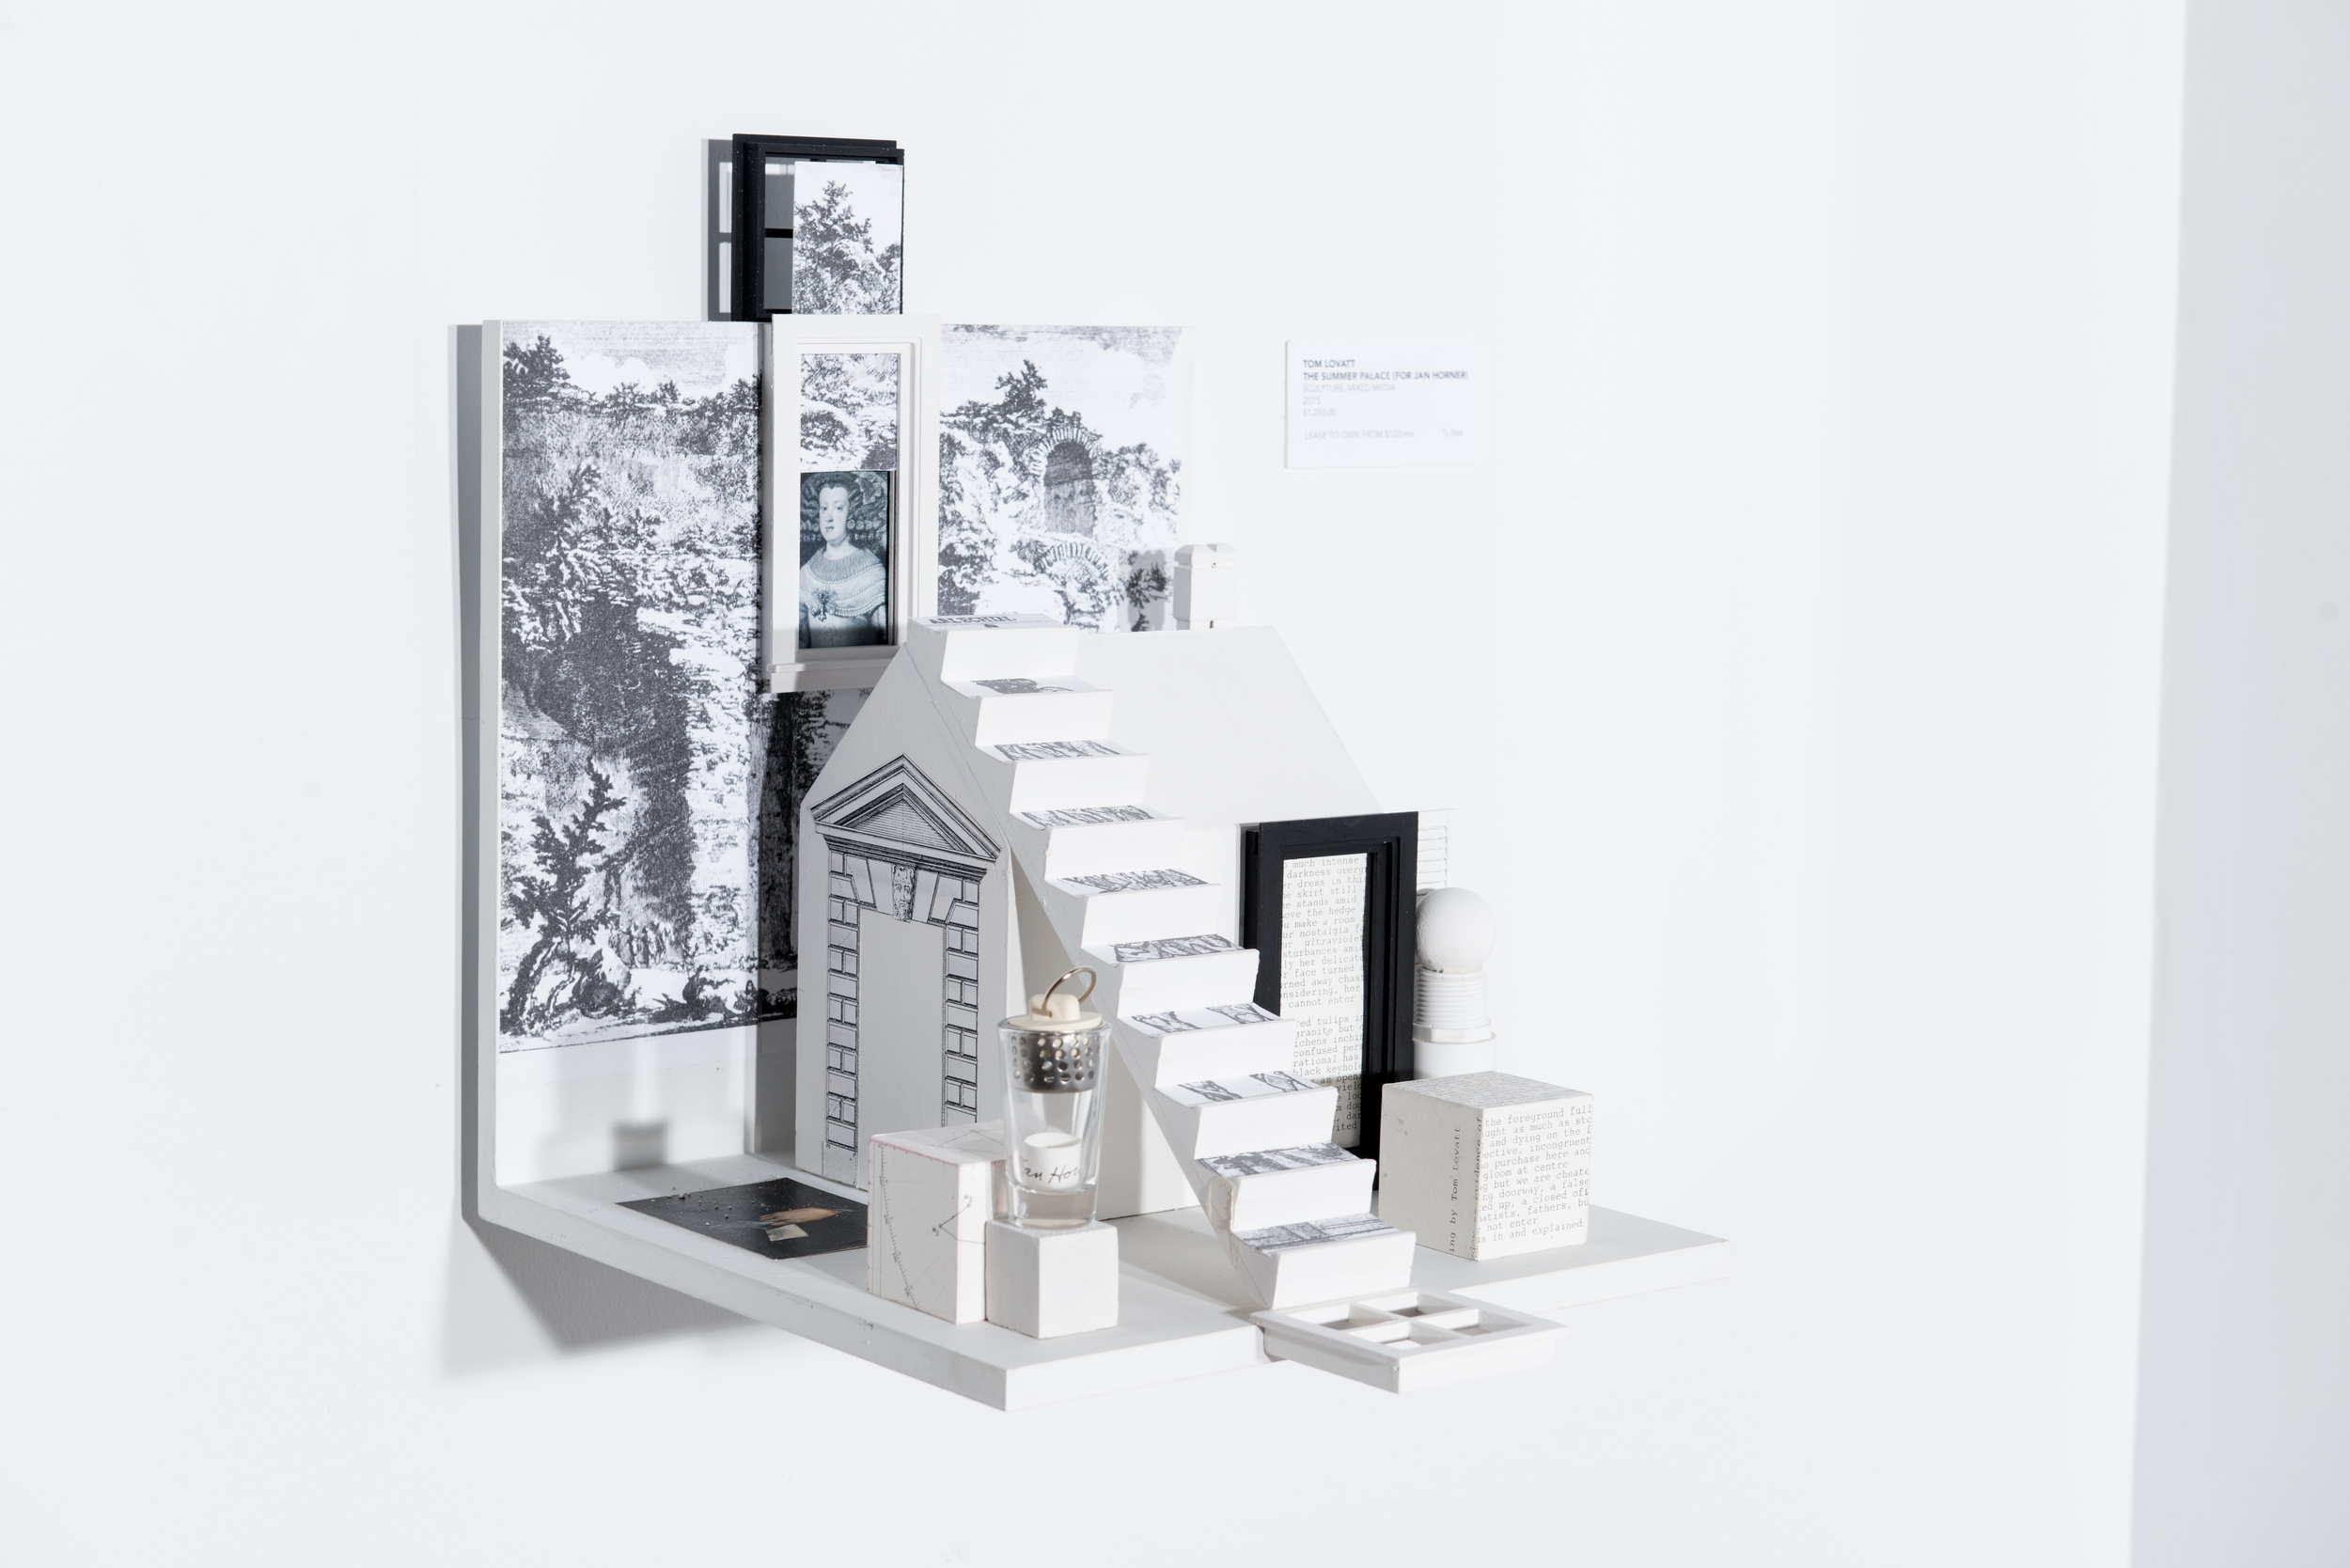 TL-066, The Summer Palace (For Jan Horner), Sculpture, Mixed Media, 2015, $1,250